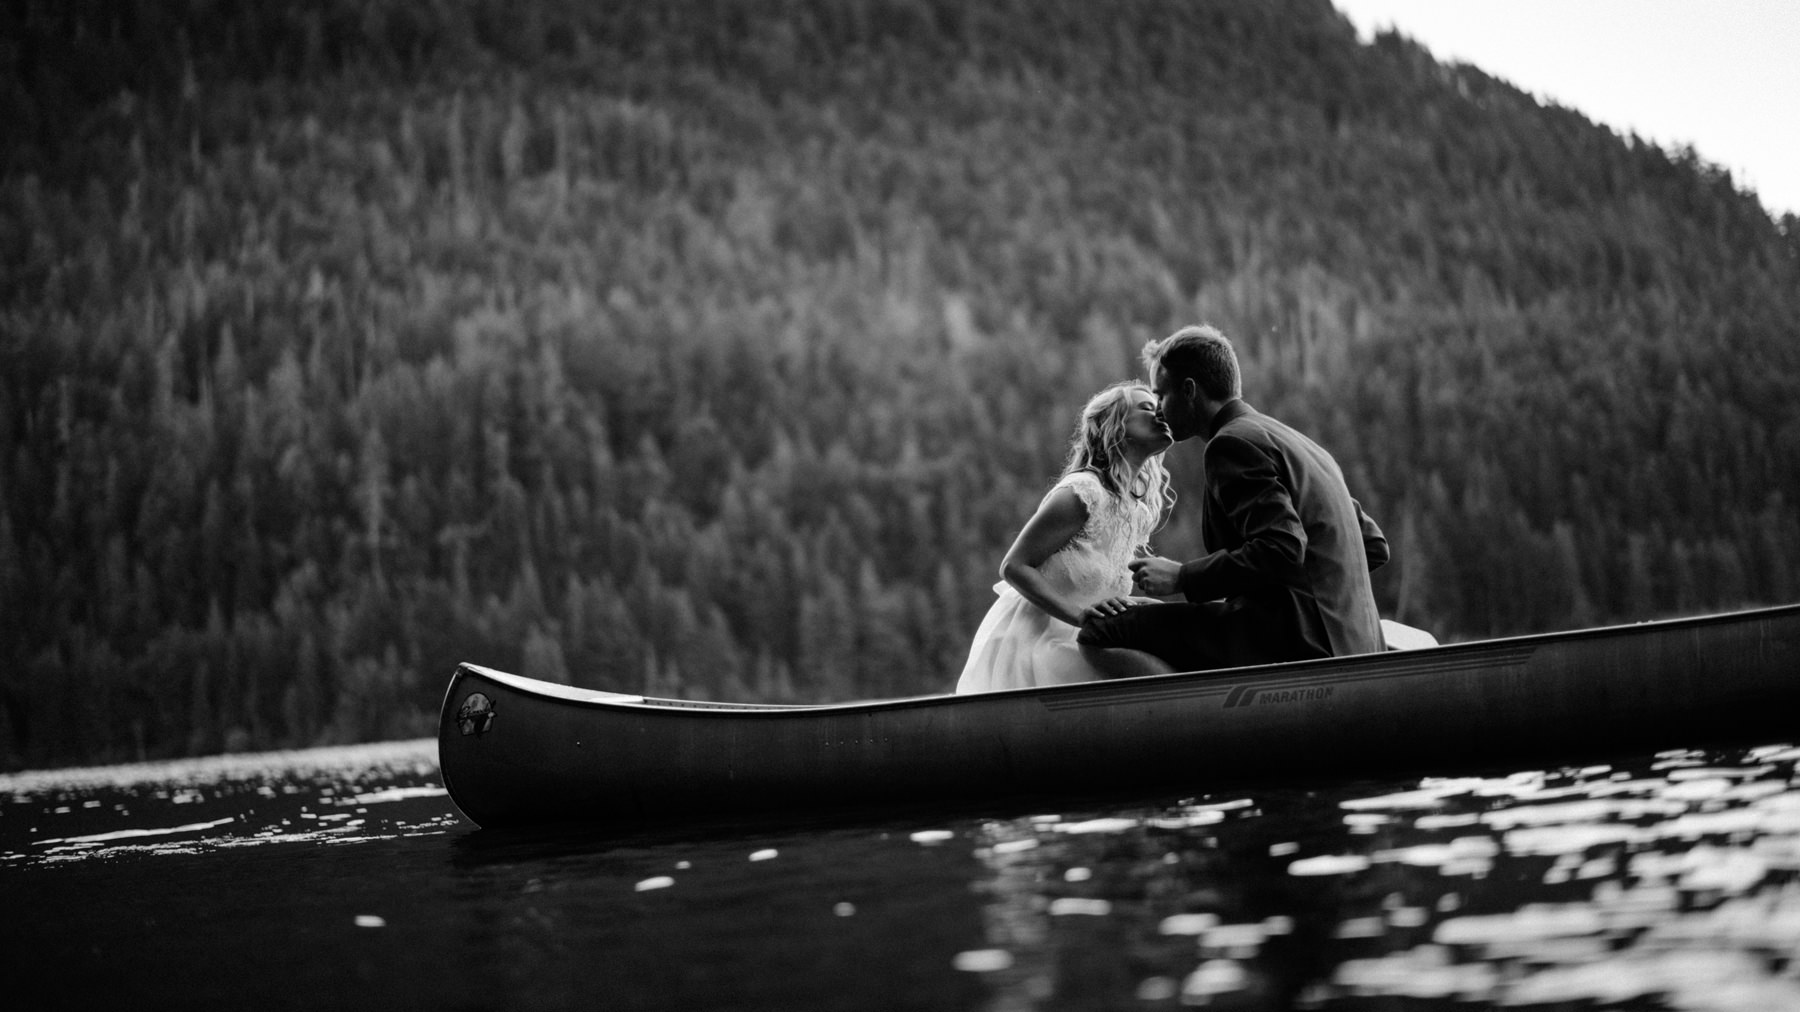 188-bride-and-groom-in-a-canoe-across-lake-crescent-by-nature-bridge.jpg